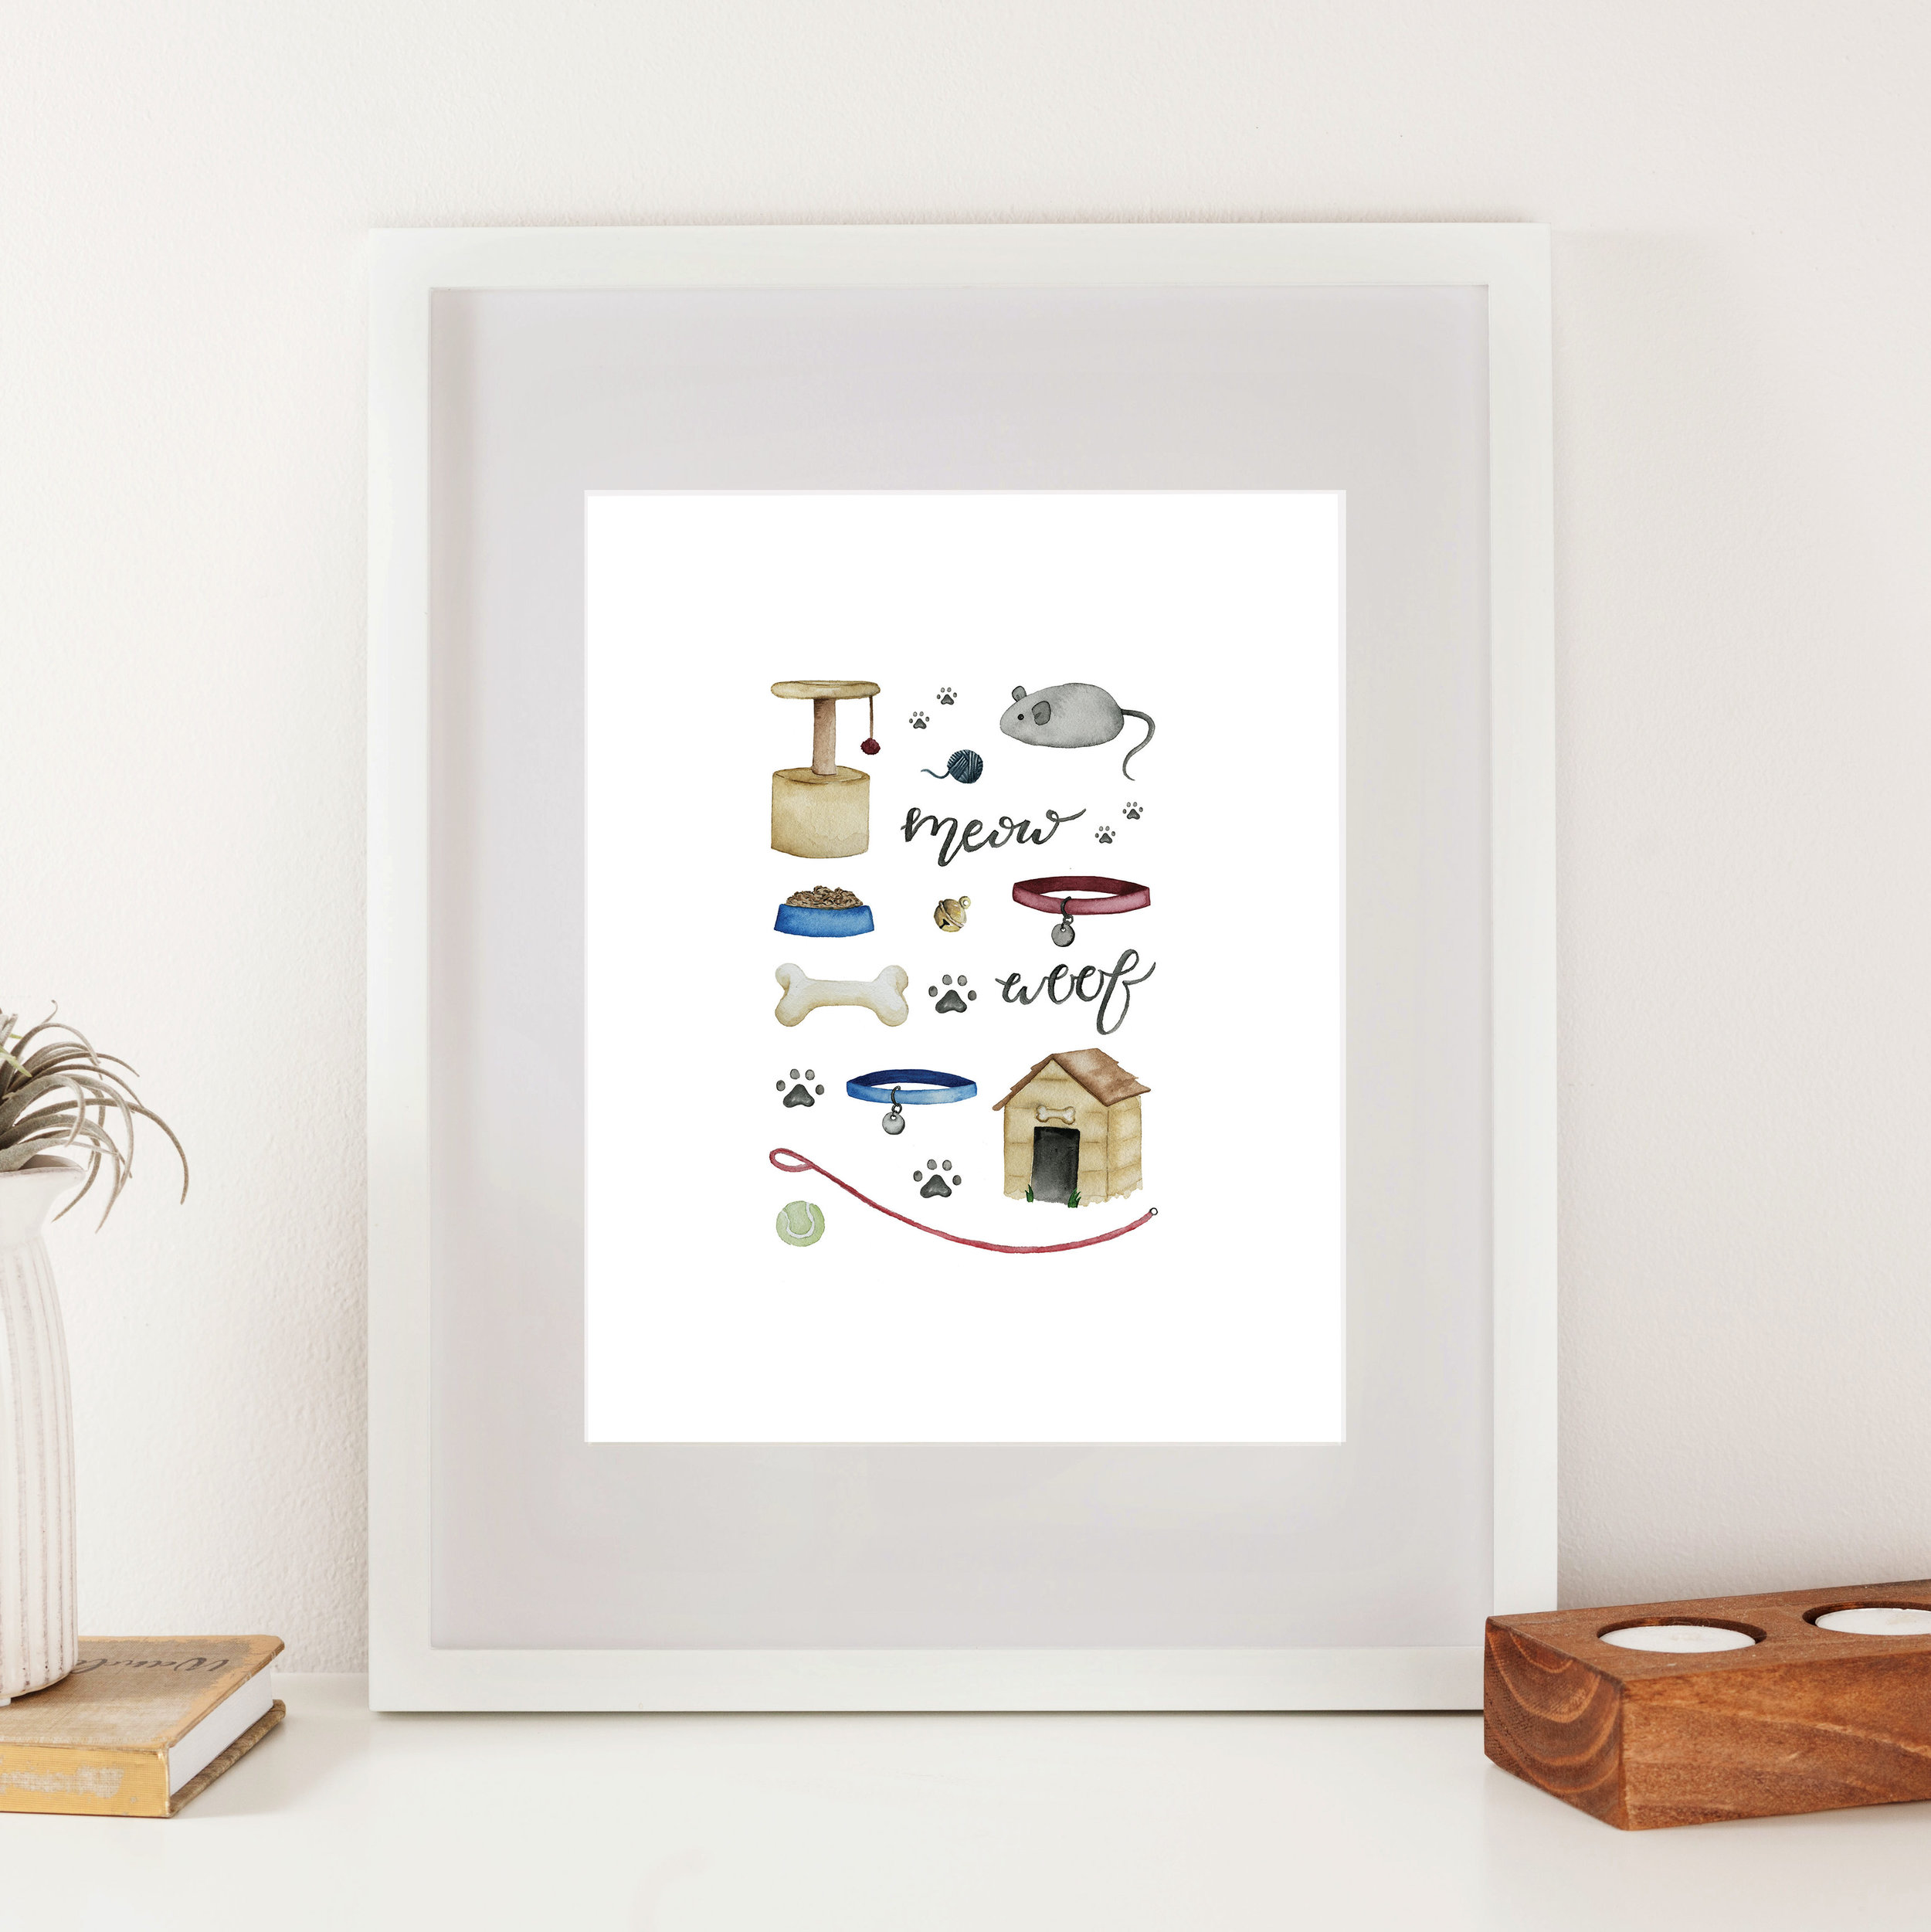 Pet (Cat & Dog) Accessories Print - Starting at $24.00